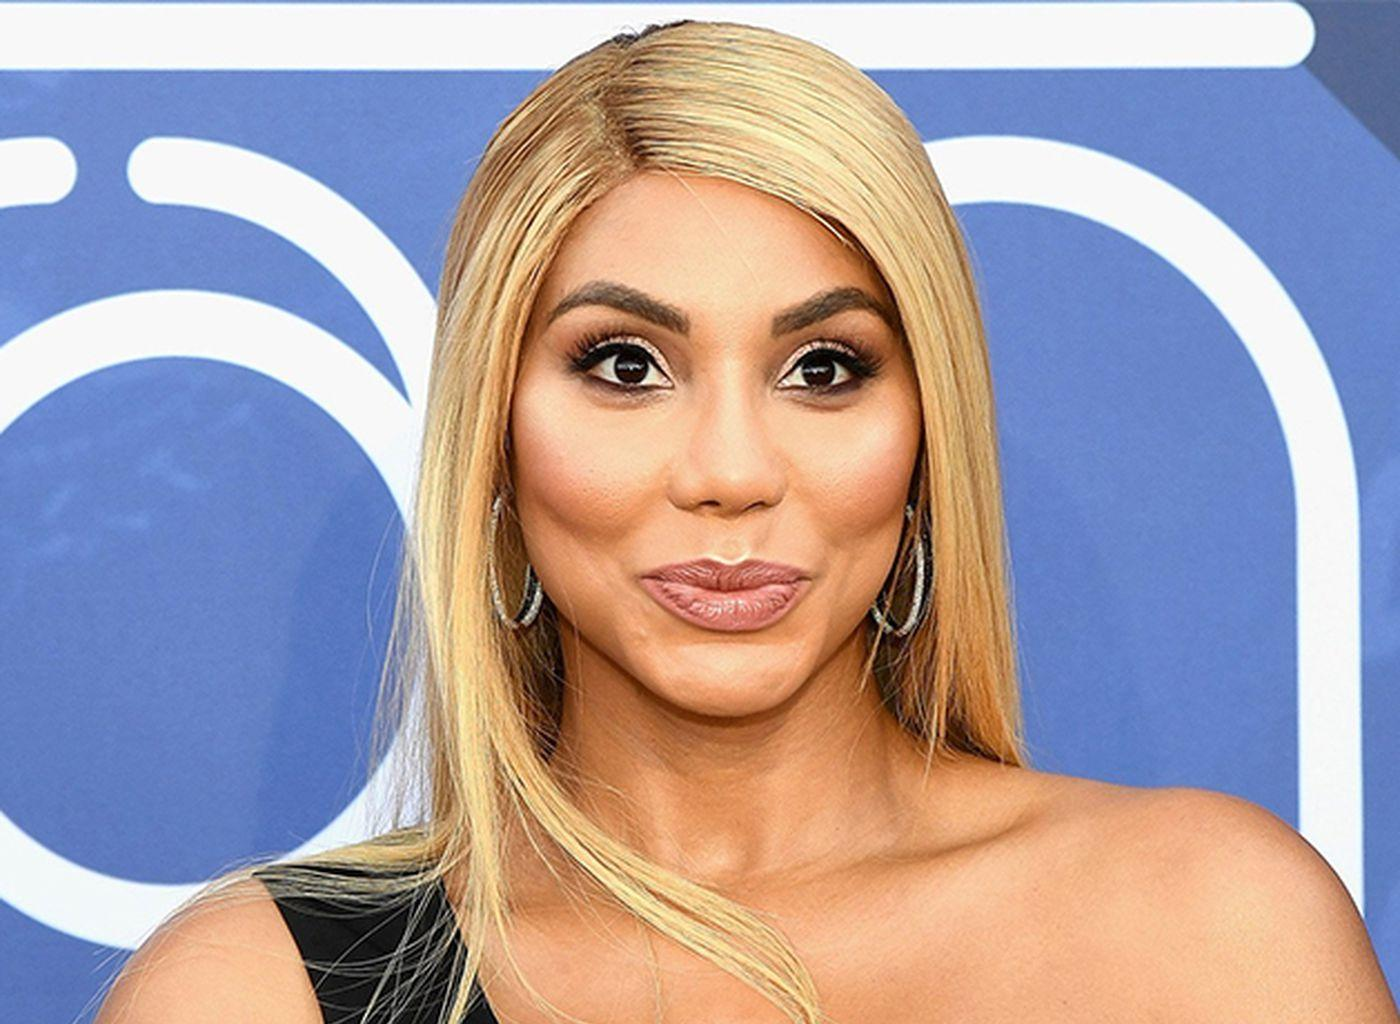 Tamar Braxton Releases A New Podcast Episode - Check Out Her Message